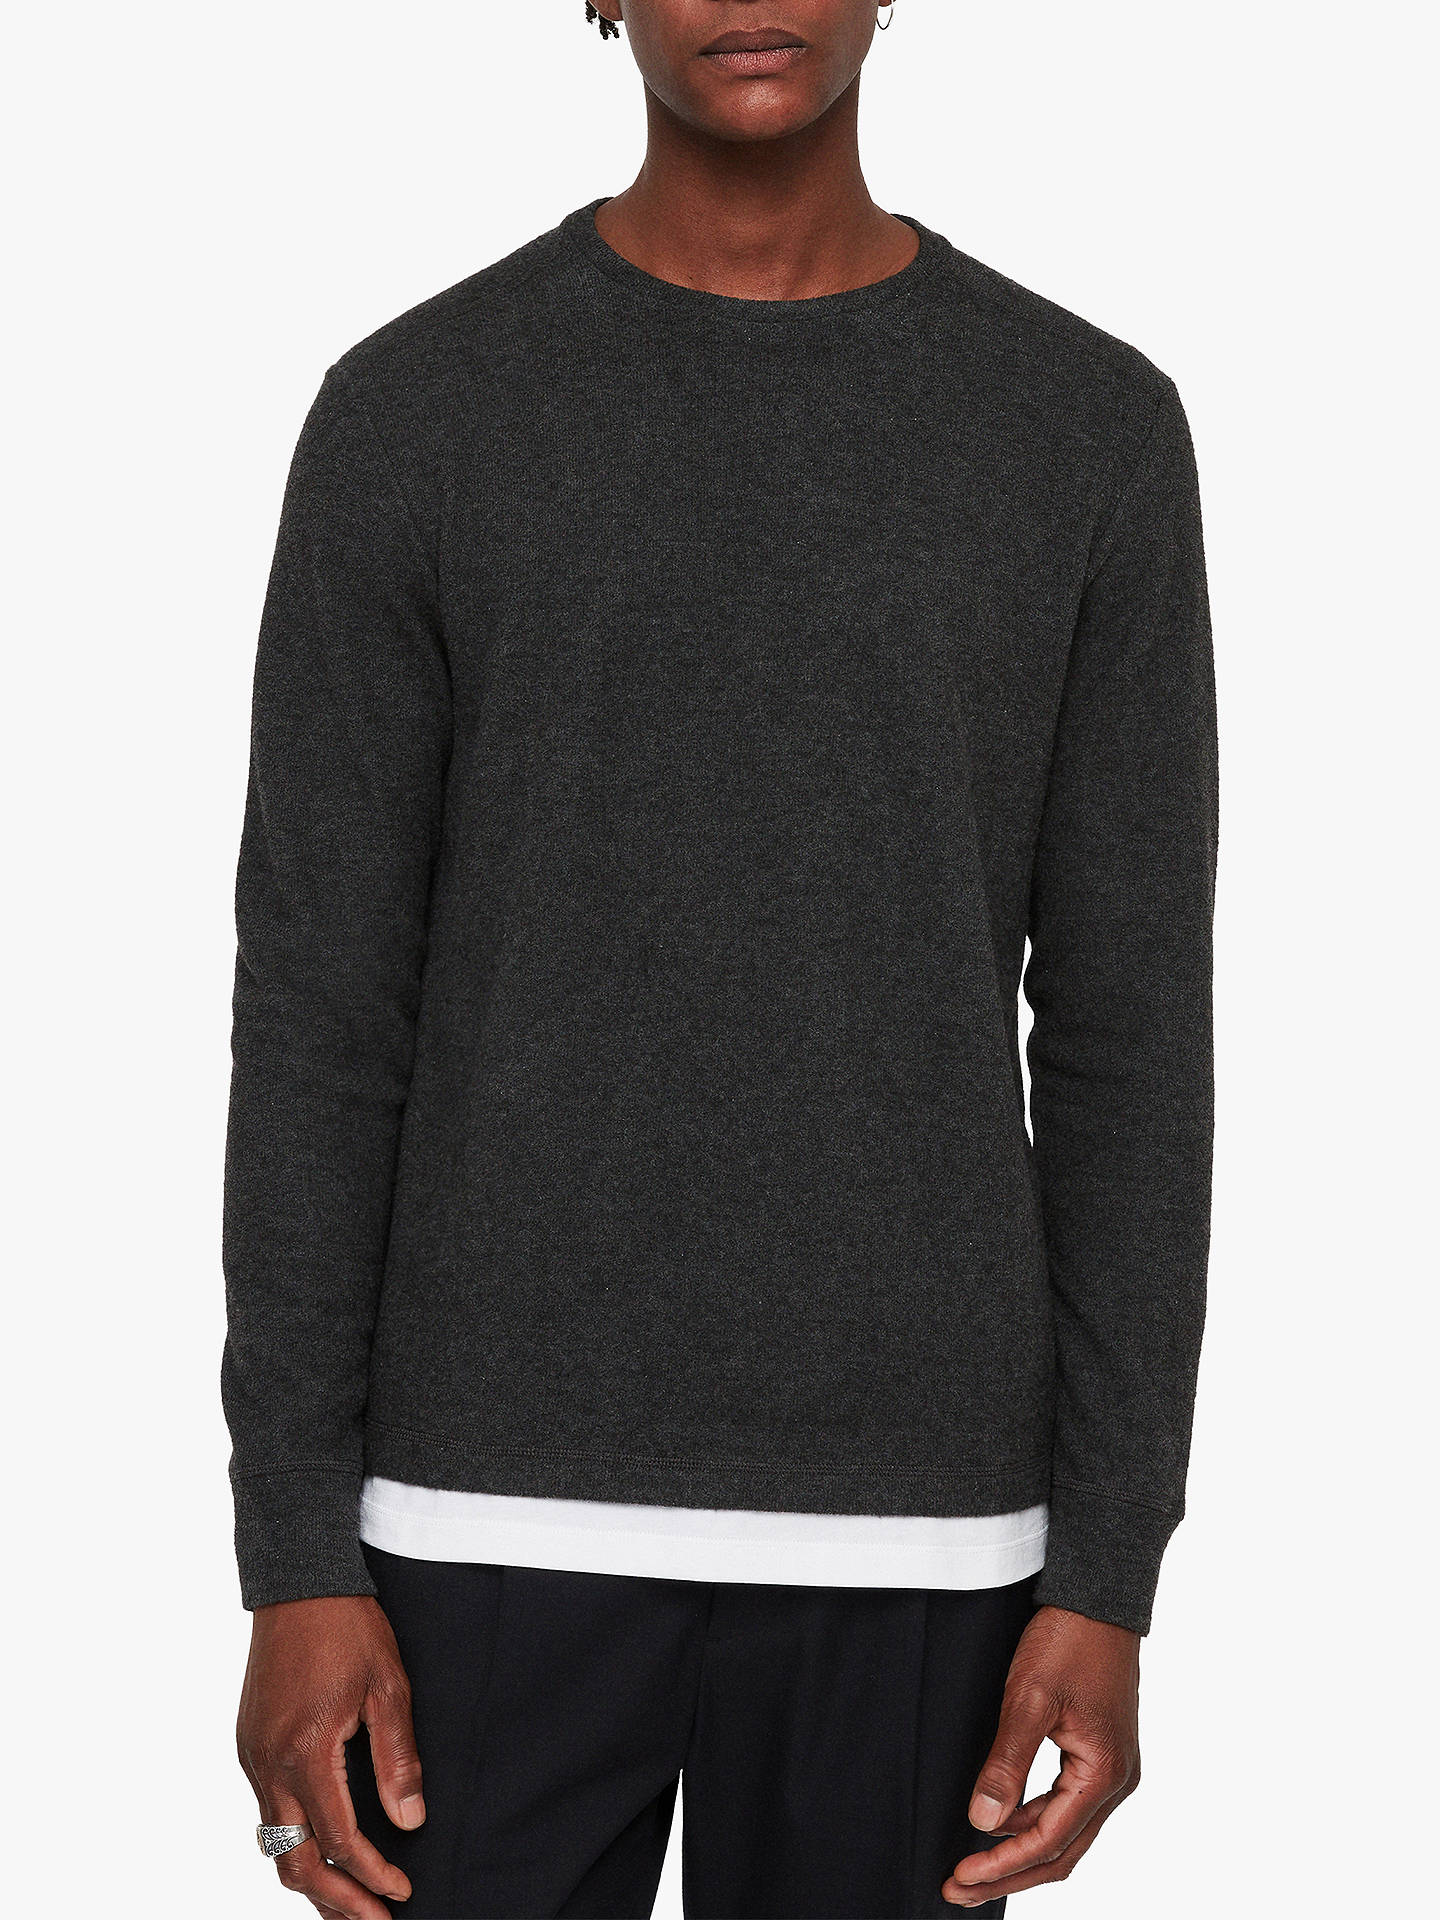 BuyAllSaints Luge Layered T-Shirt, Charcoal Marl, XS Online at johnlewis.com